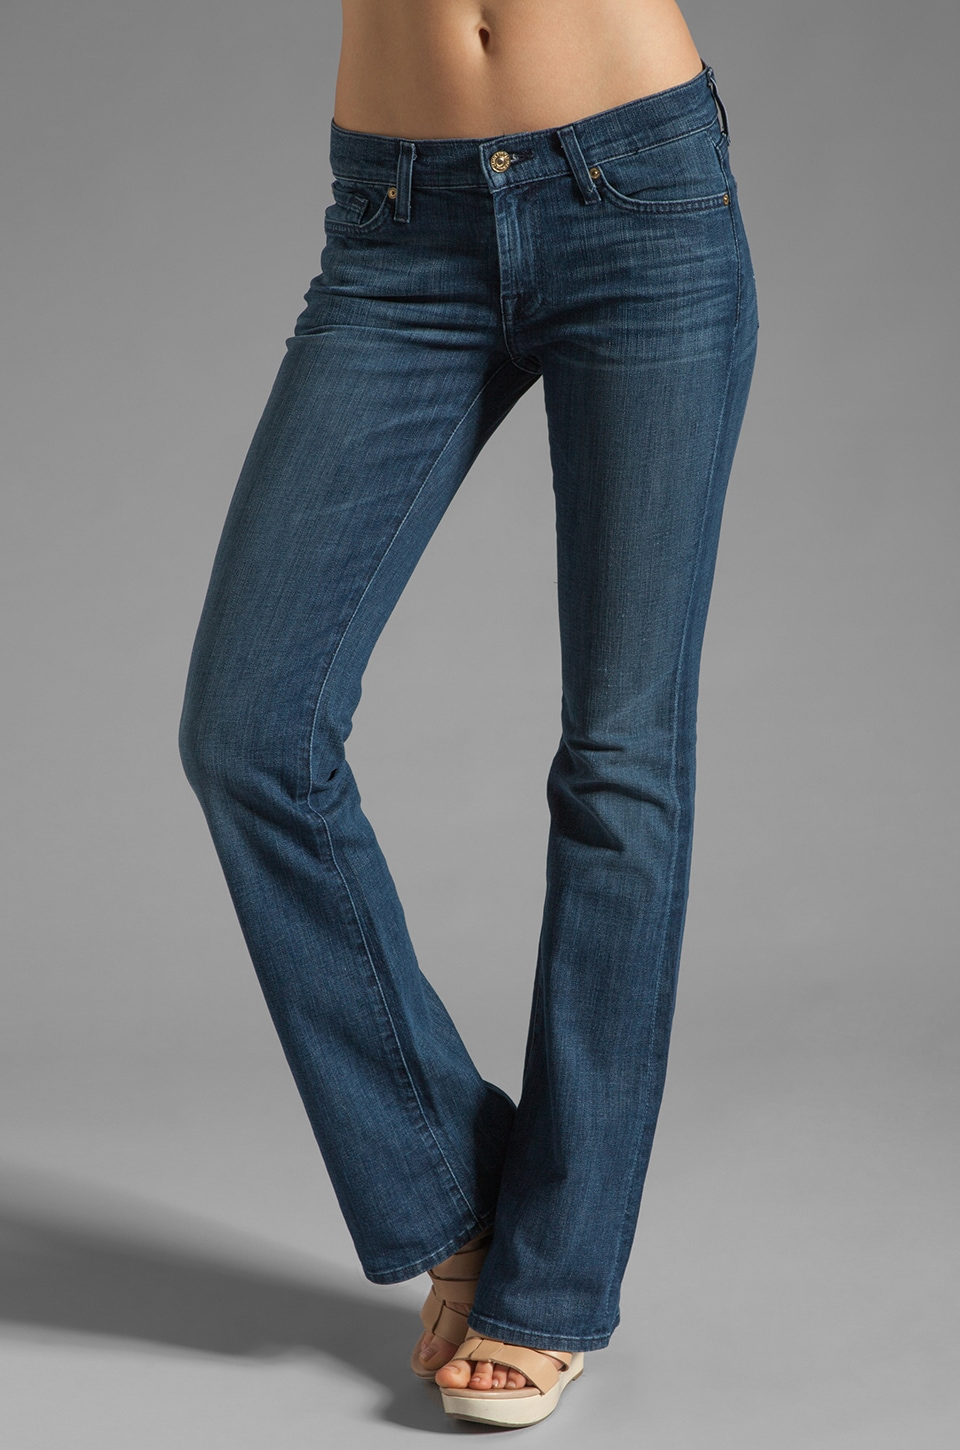 7 For All Mankind Bootcut in Radiant Shining Star